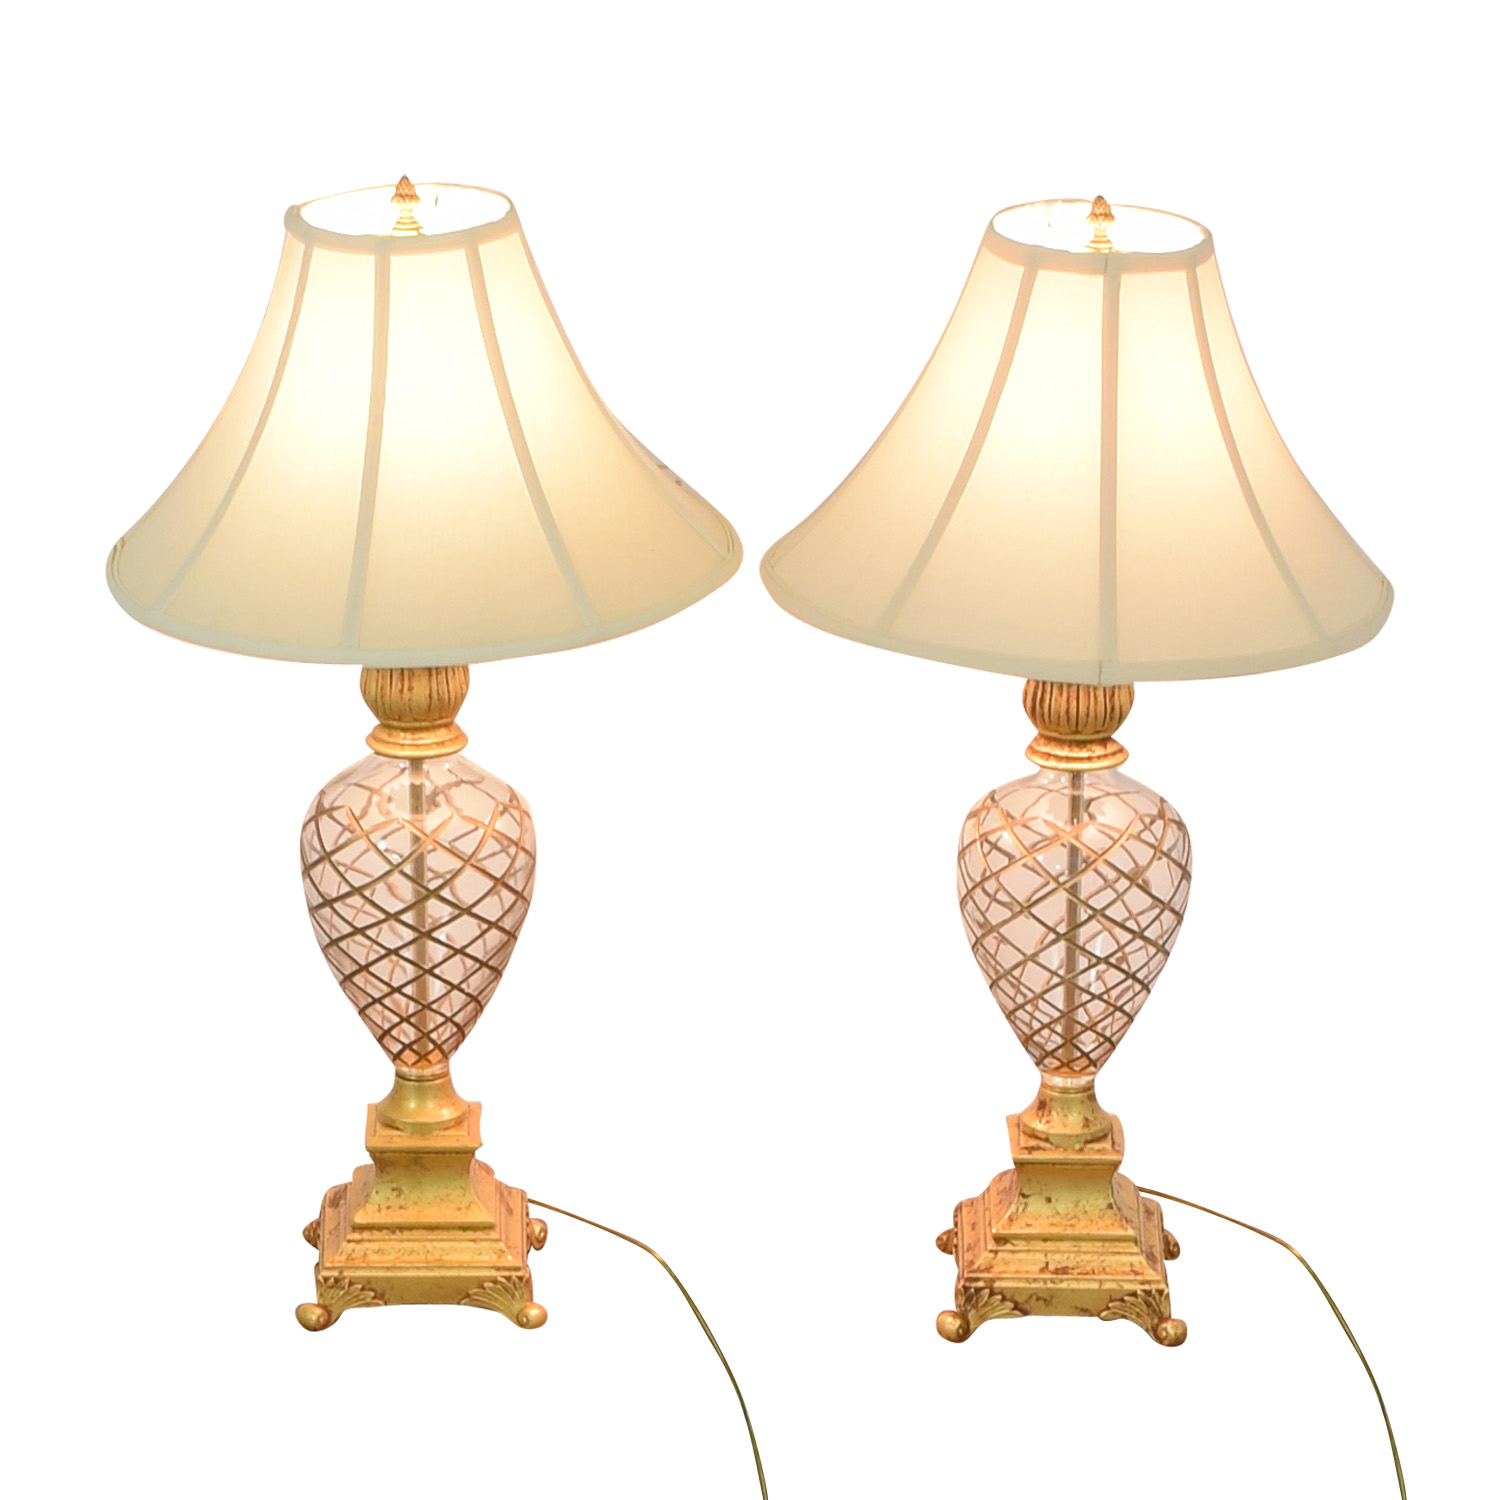 Ethan Allen Ethan Allen Table Lamps on sale